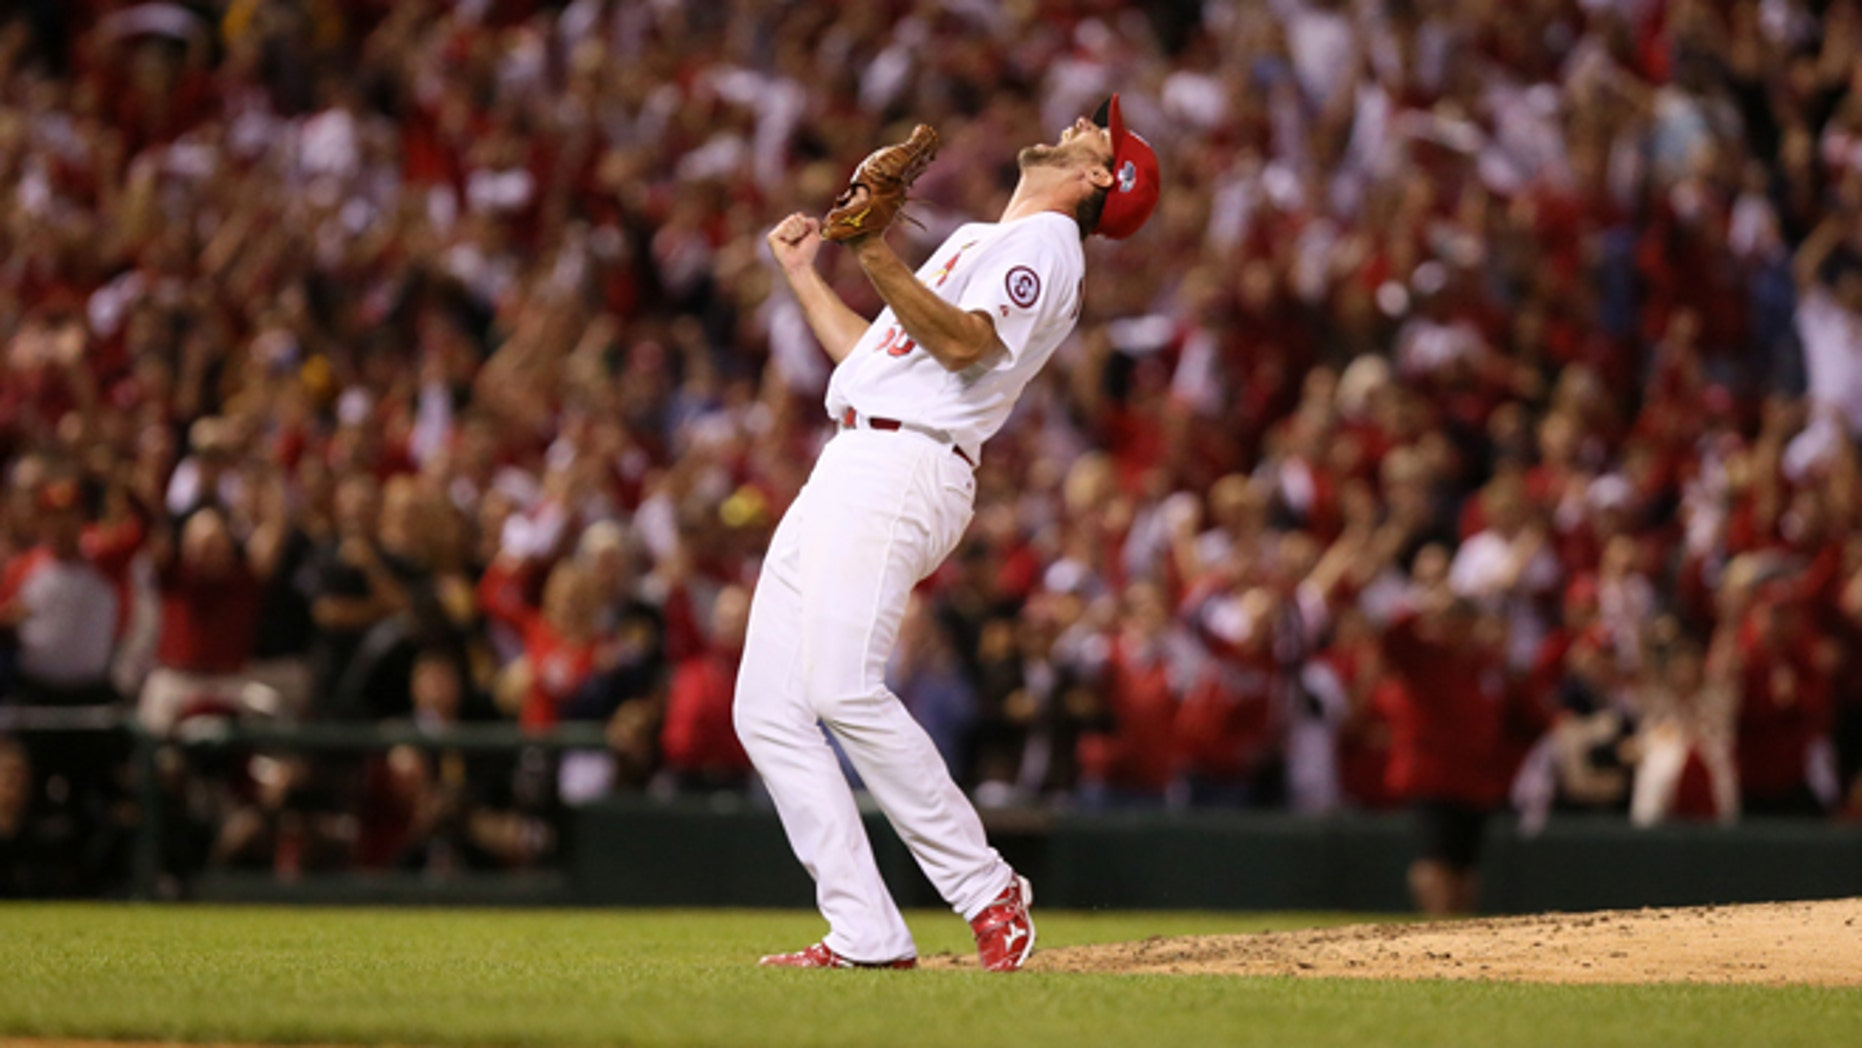 St. Louis Cardinals starting pitcher Adam Wainwright reacts after throwing a complete game shut out during Game 5 of the National League Division Series between the St. Louis Cardinals and the Pittsburgh Pirates on Wednesday, Oct. 9, 2013, at Busch Stadium in St. Louis.  (AP Photo/post-dispatch.com, Chris Lee)